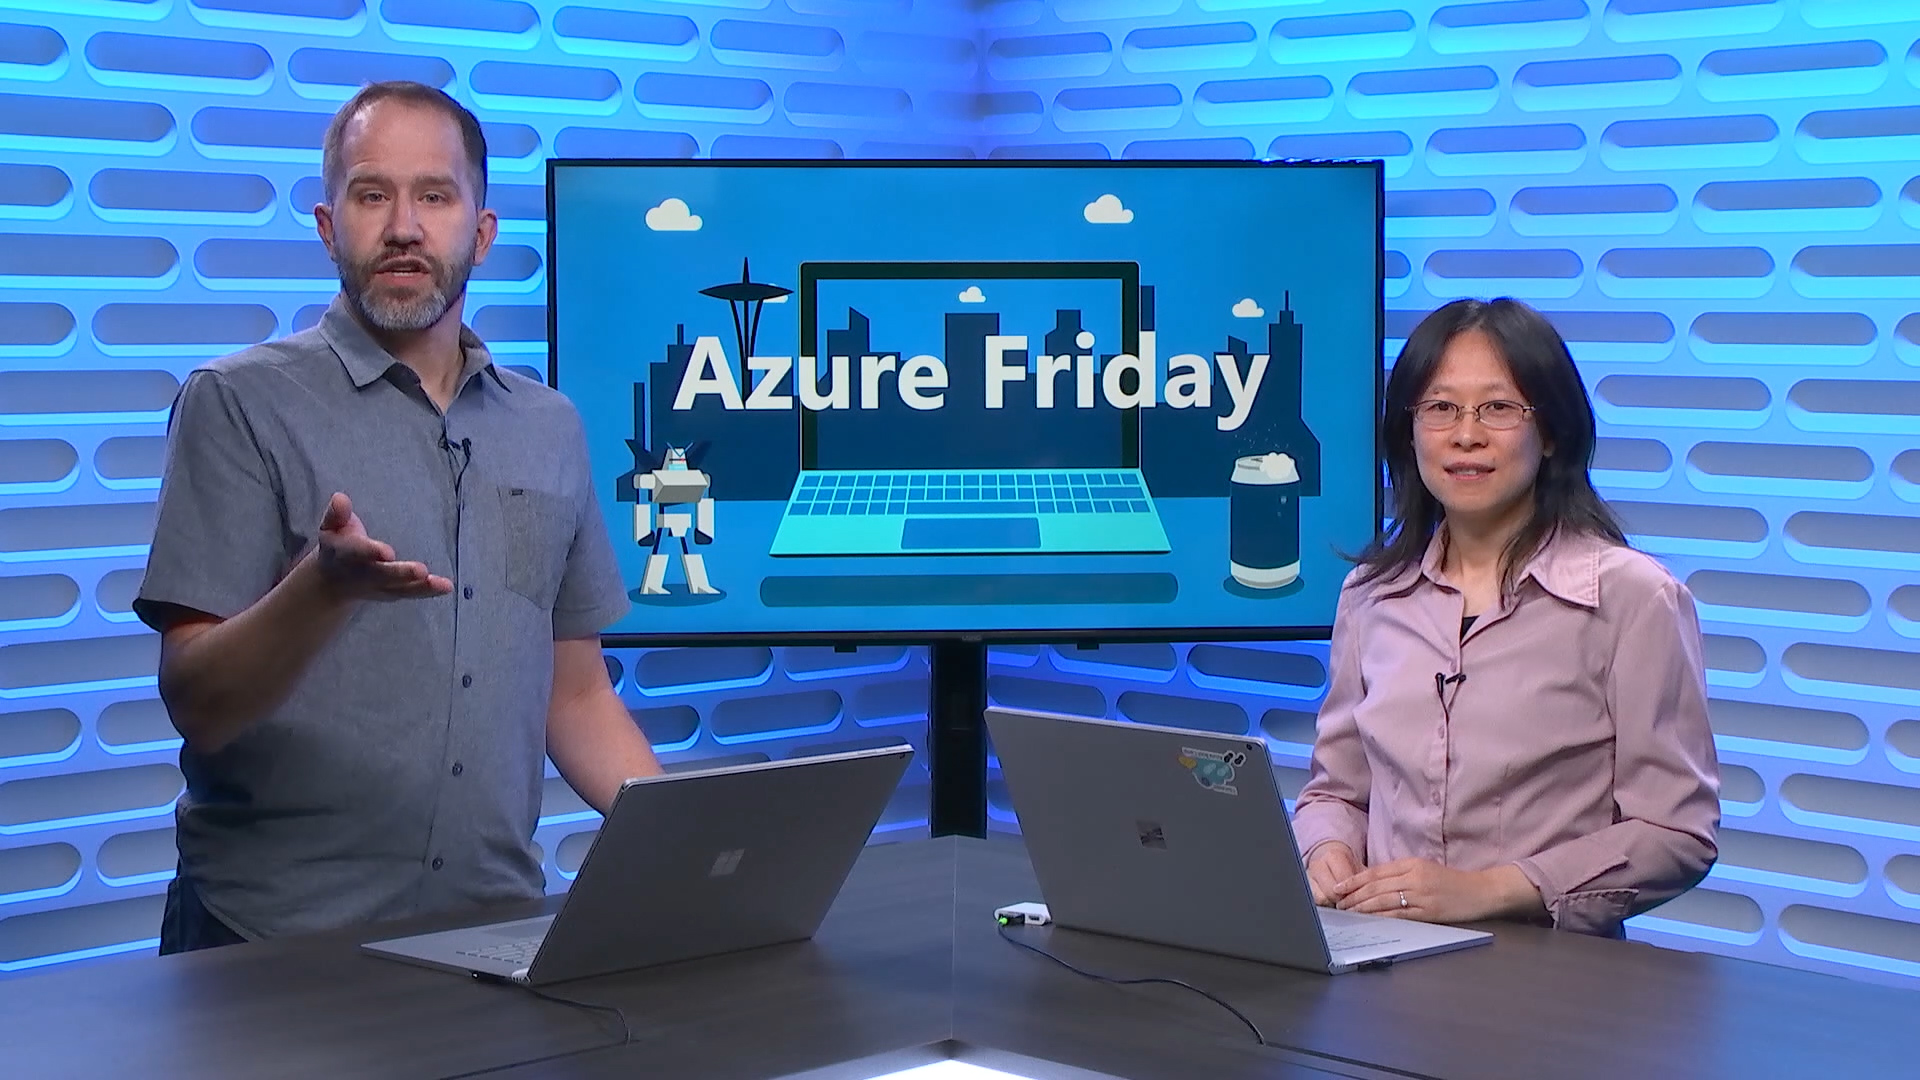 How to share SQL tables and views using Azure Data Share